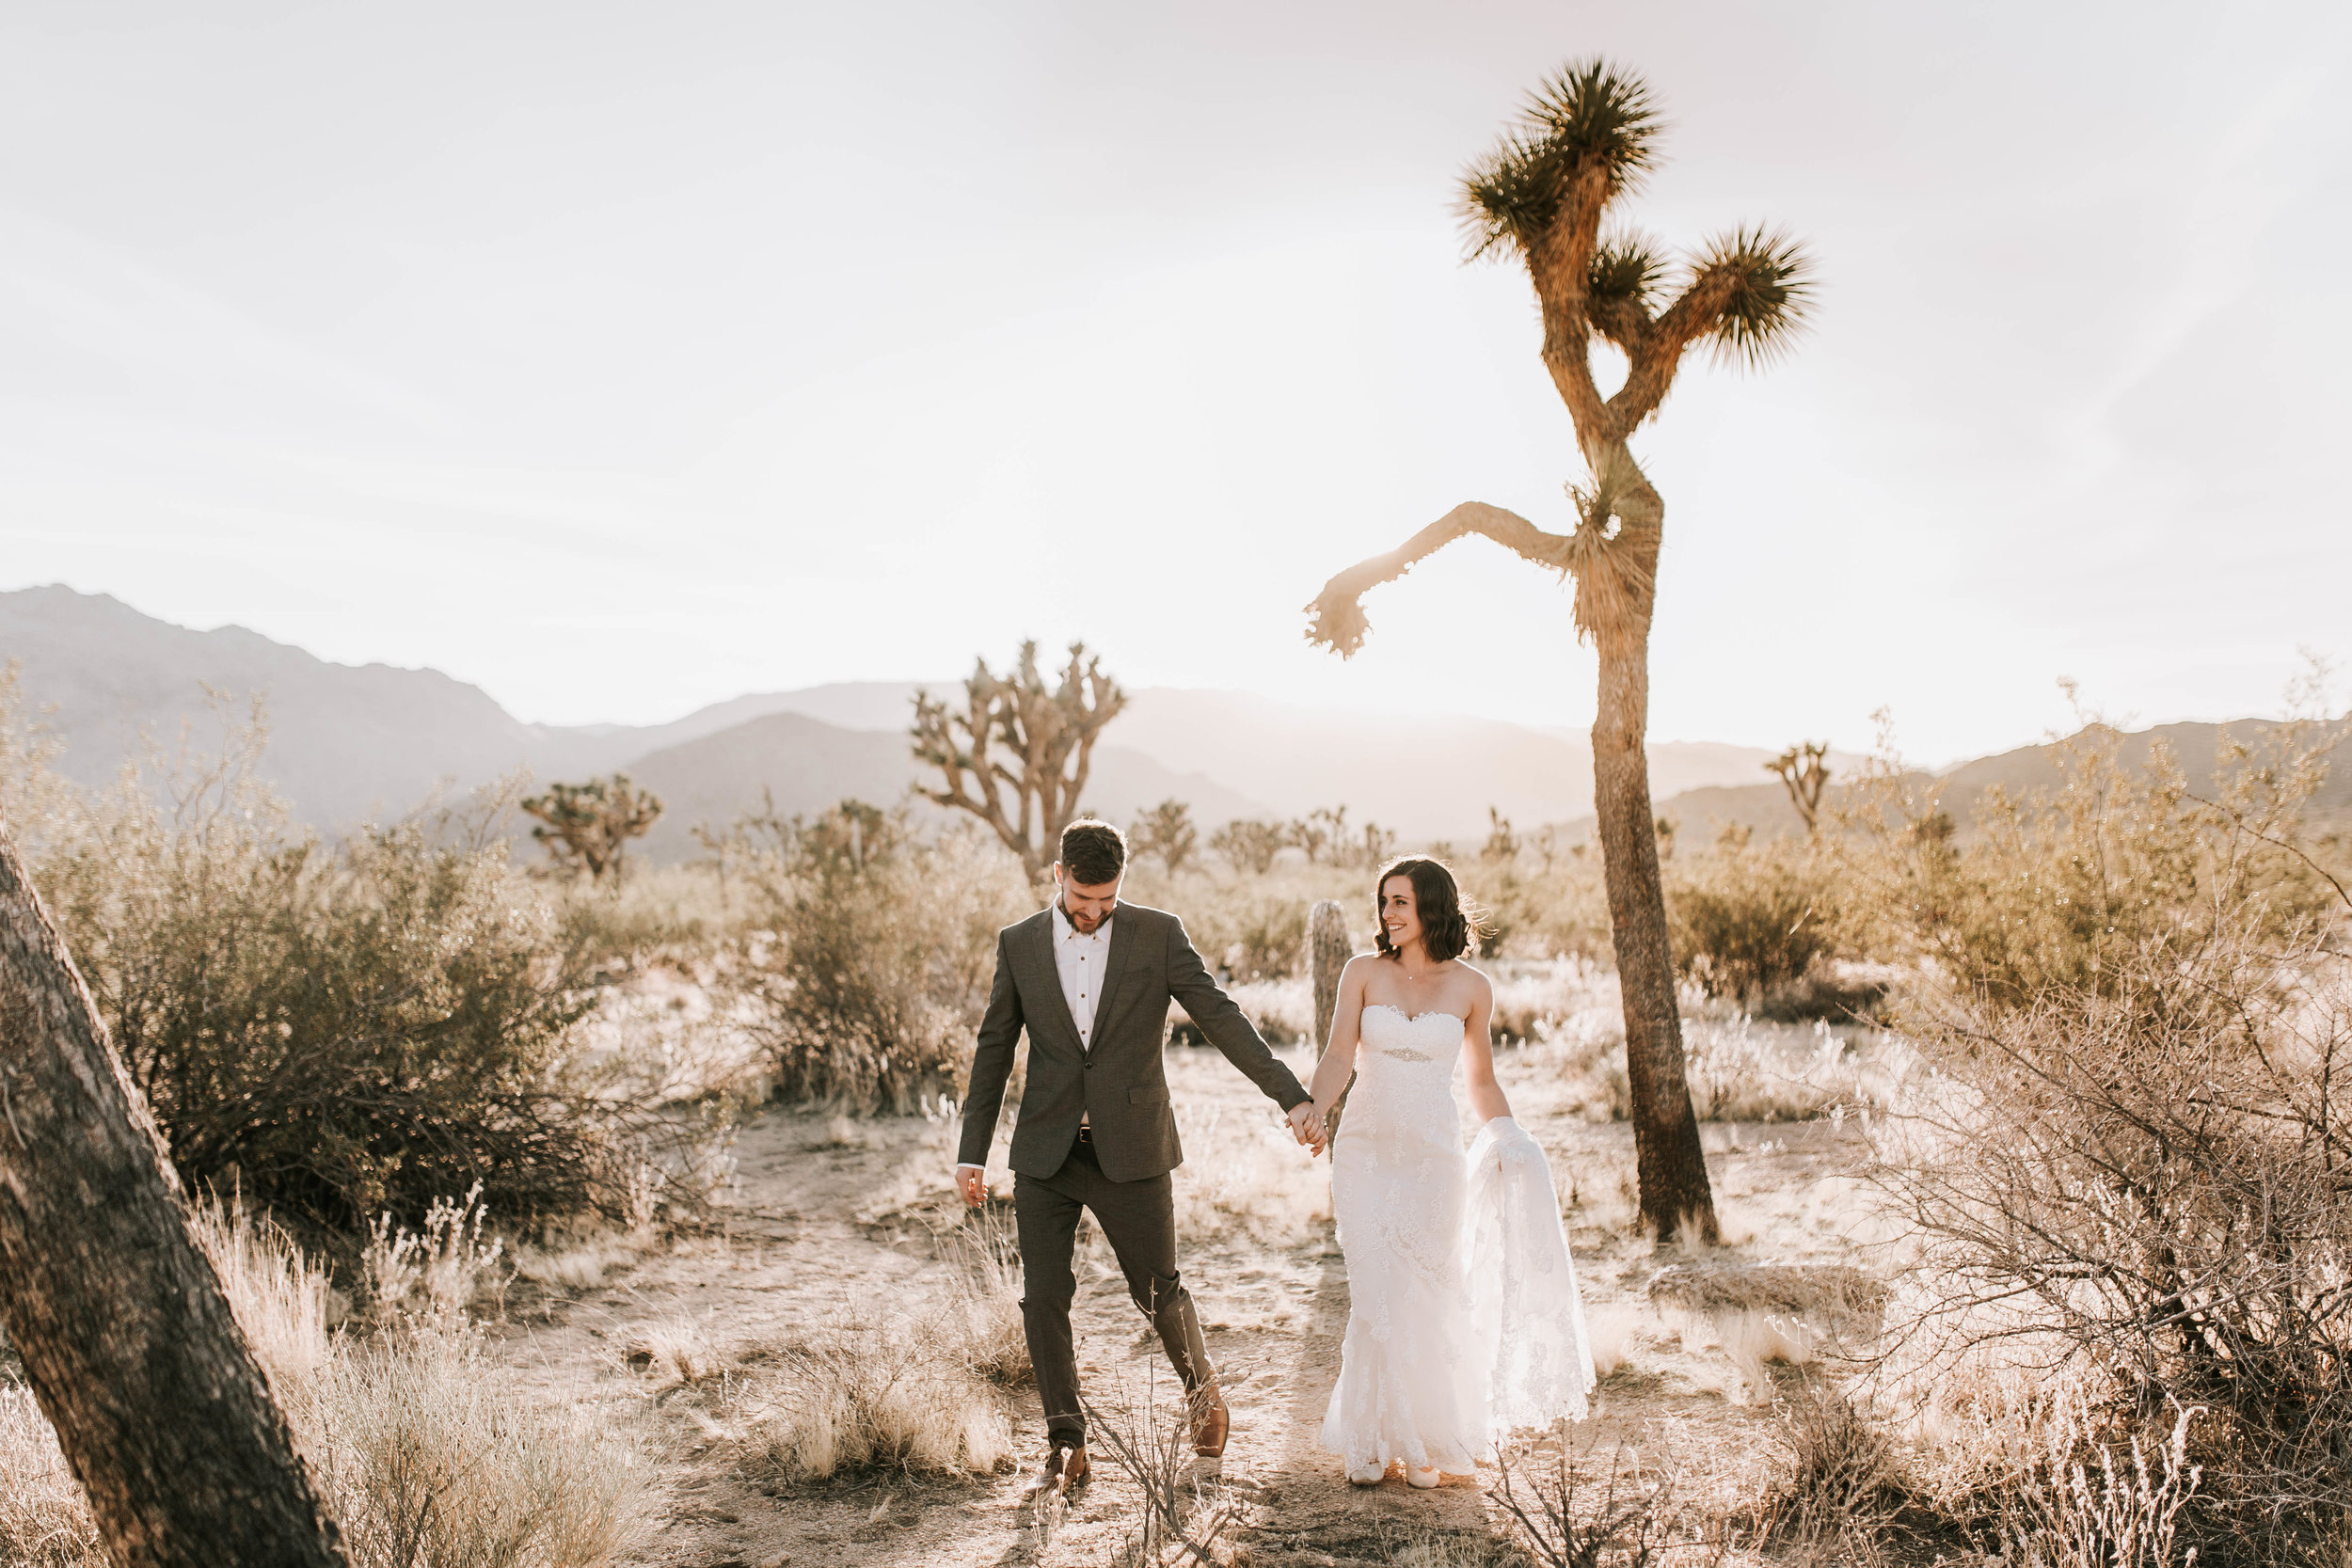 Nicole-Daacke-Photography-Adventurous-Elopement-Intimiate-Wedding-Destination-Wedding-Joshua-Tree-National-Park-desert-golden-Love-Photographer-1.jpg